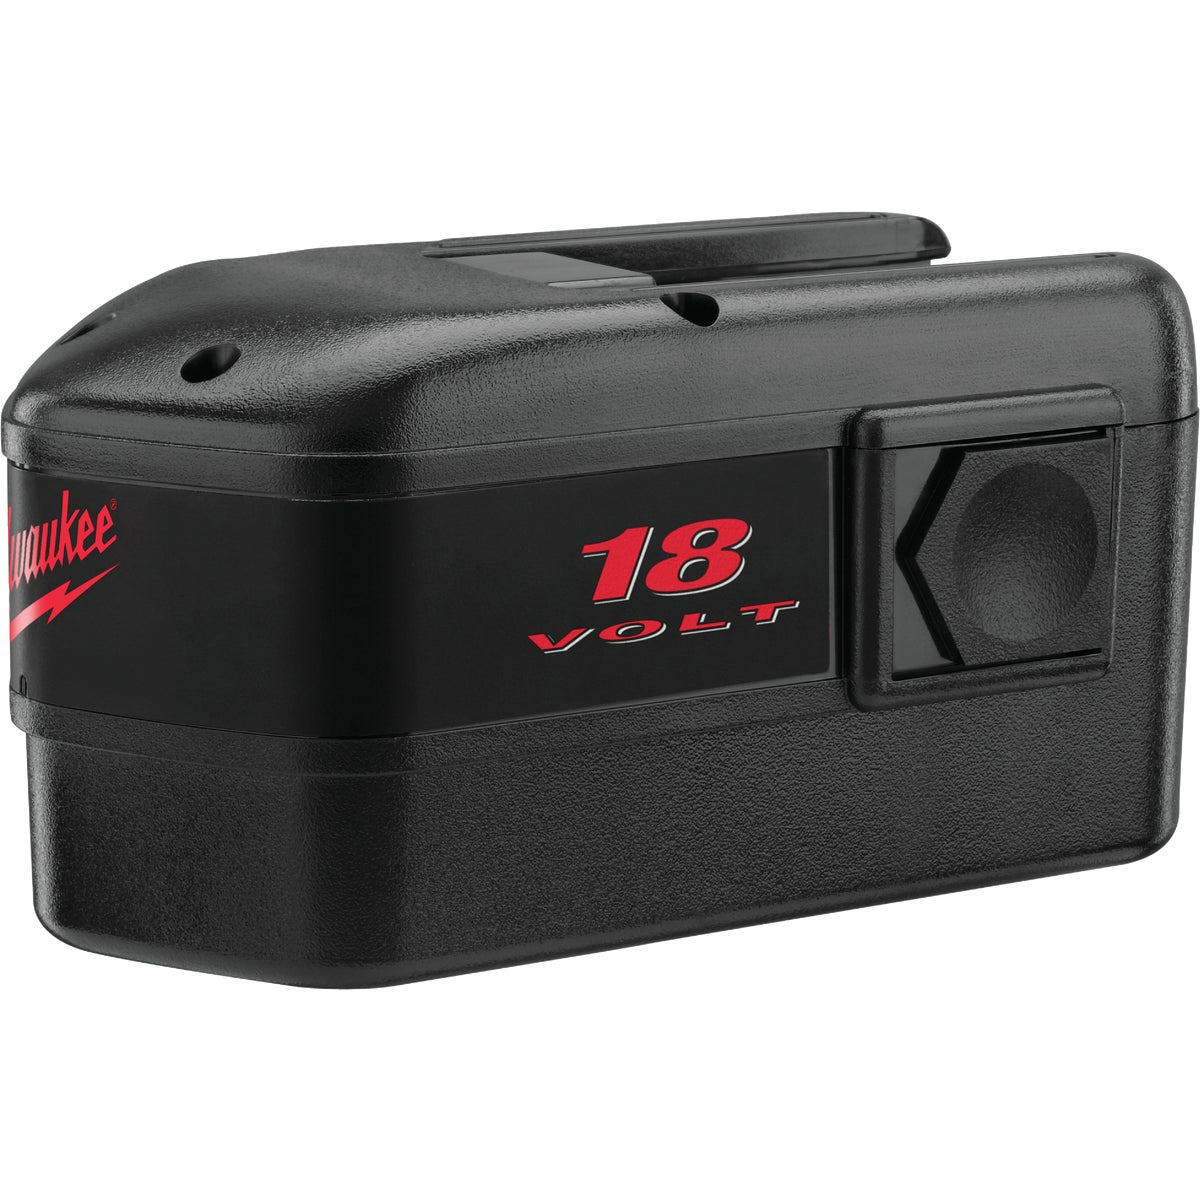 18V BATTERY PACK - 48112230 by Milwaukee Accessory